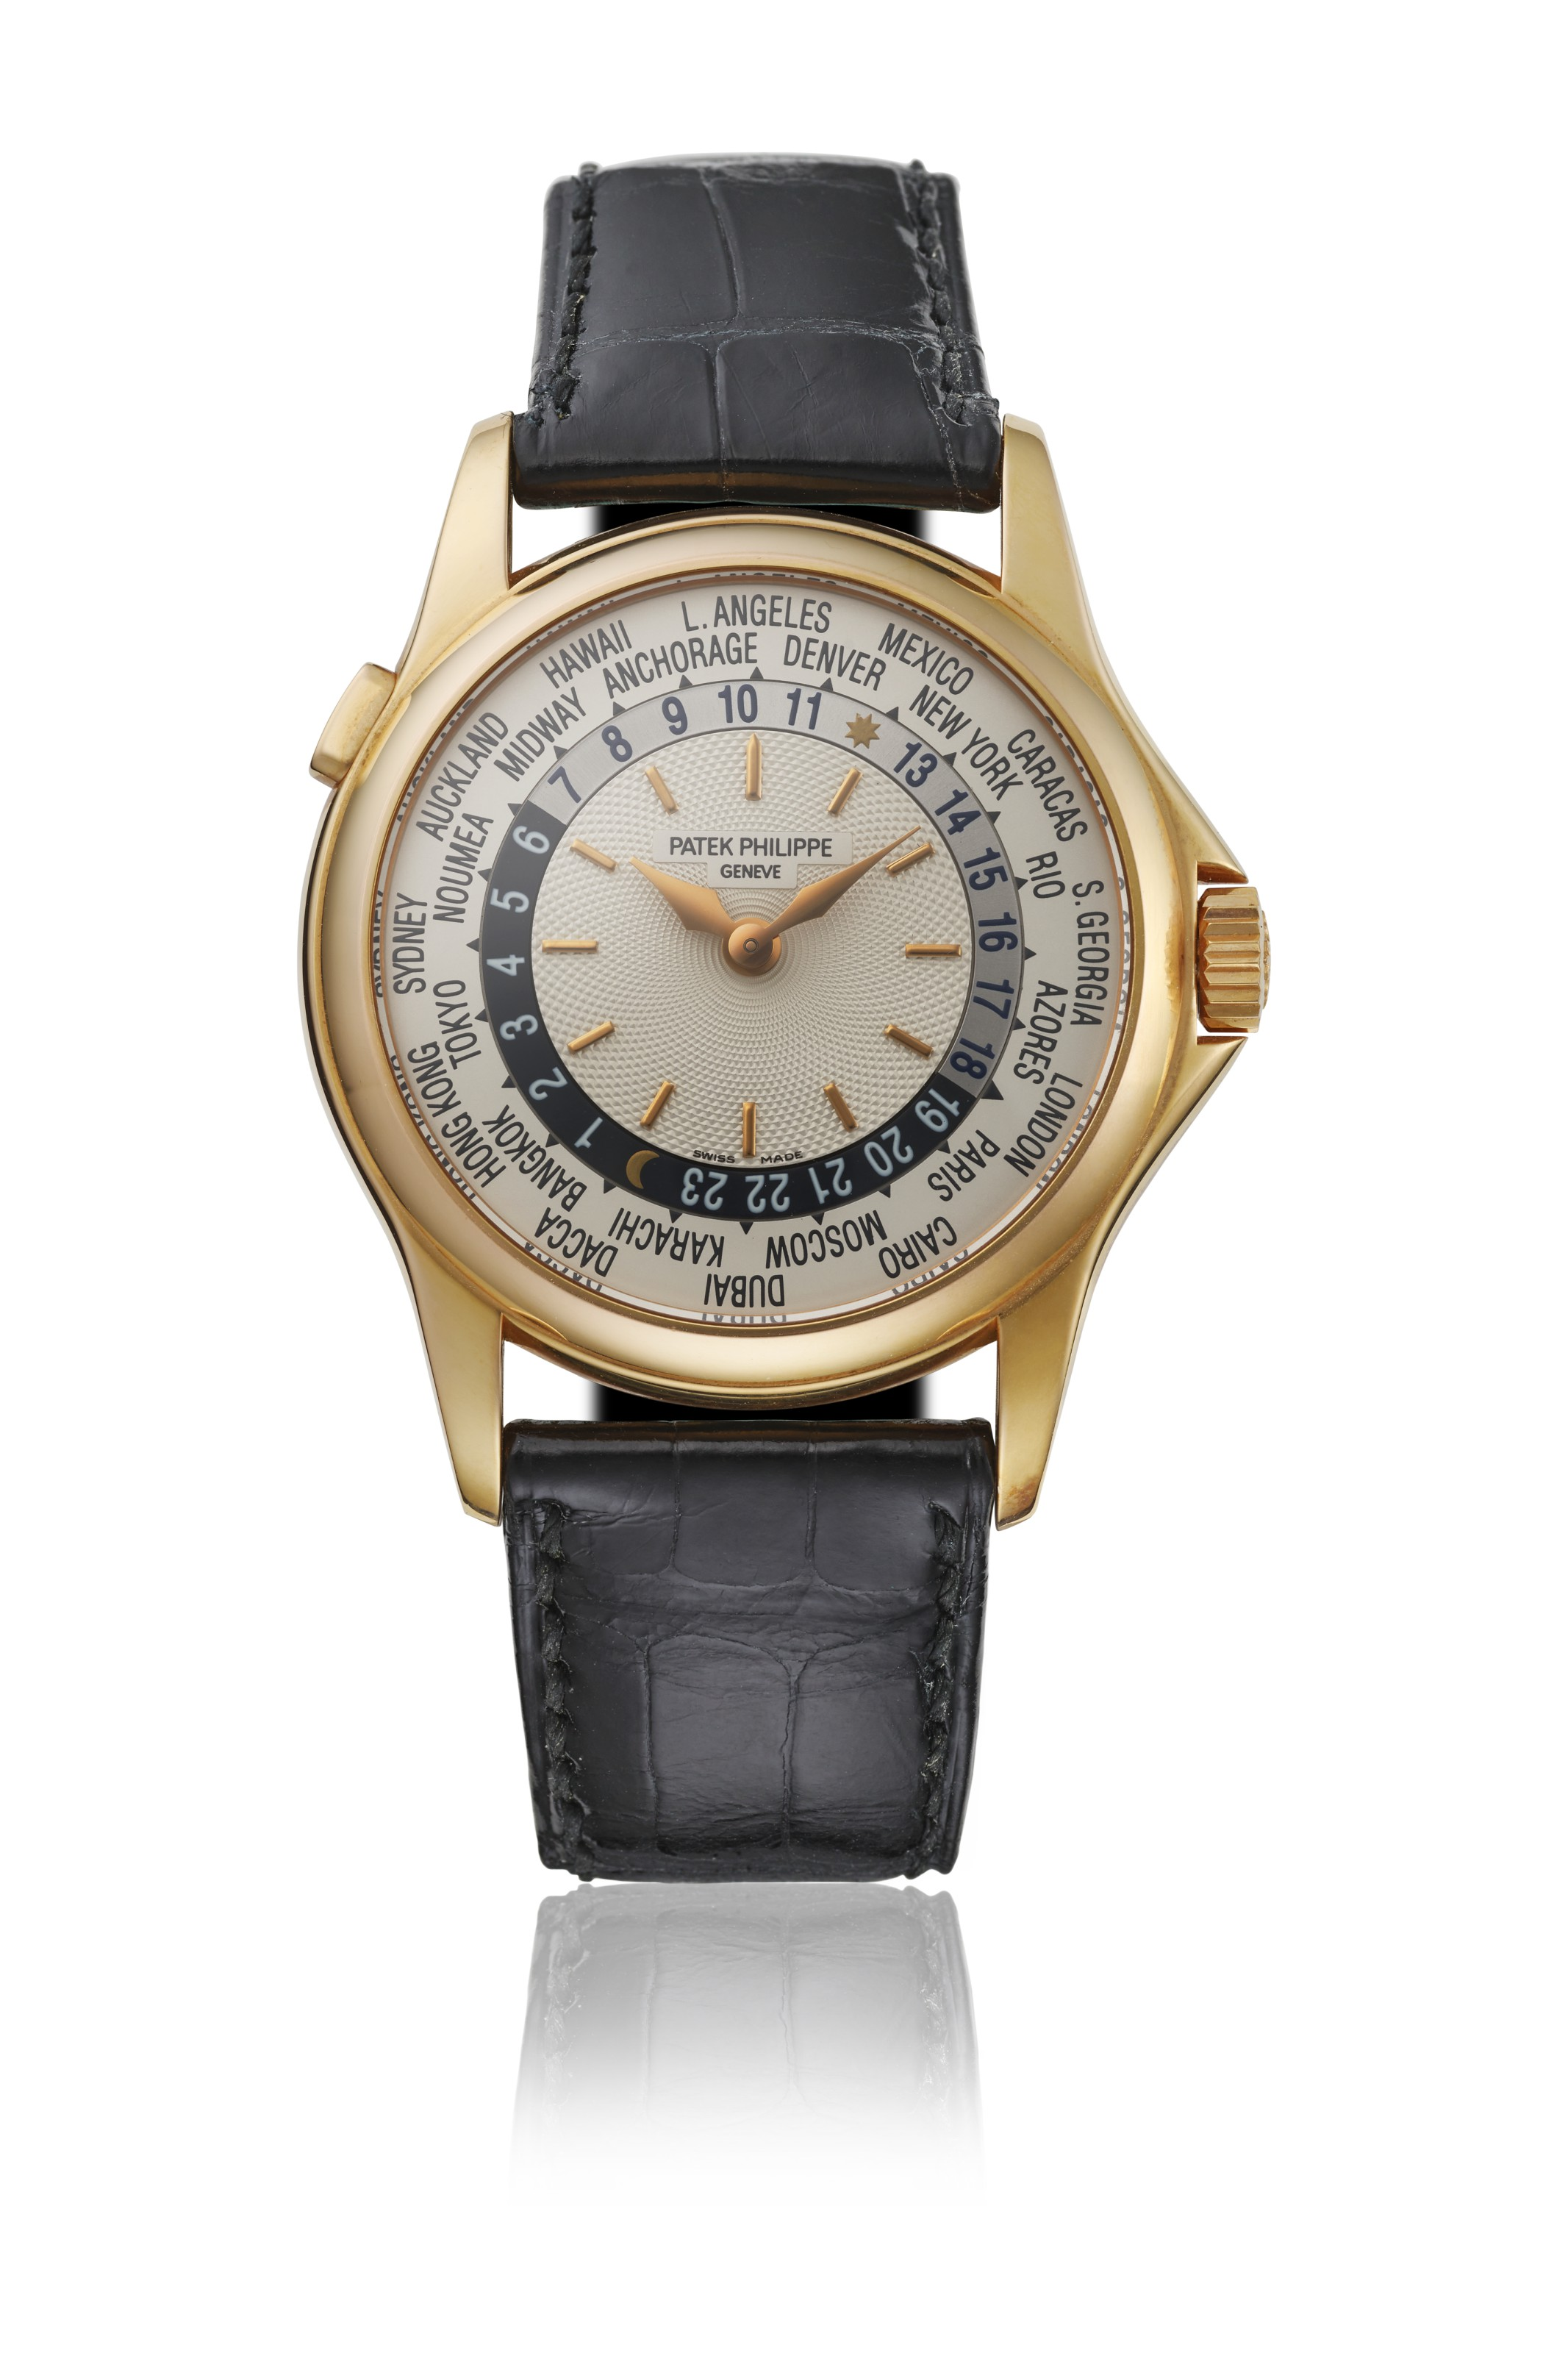 Patek Philippe, an 18k pink gold automatic World Time wristwatch with box, 2001. Sold forCHF 21,250 on 10 May 2021 at Christie's in Geneva